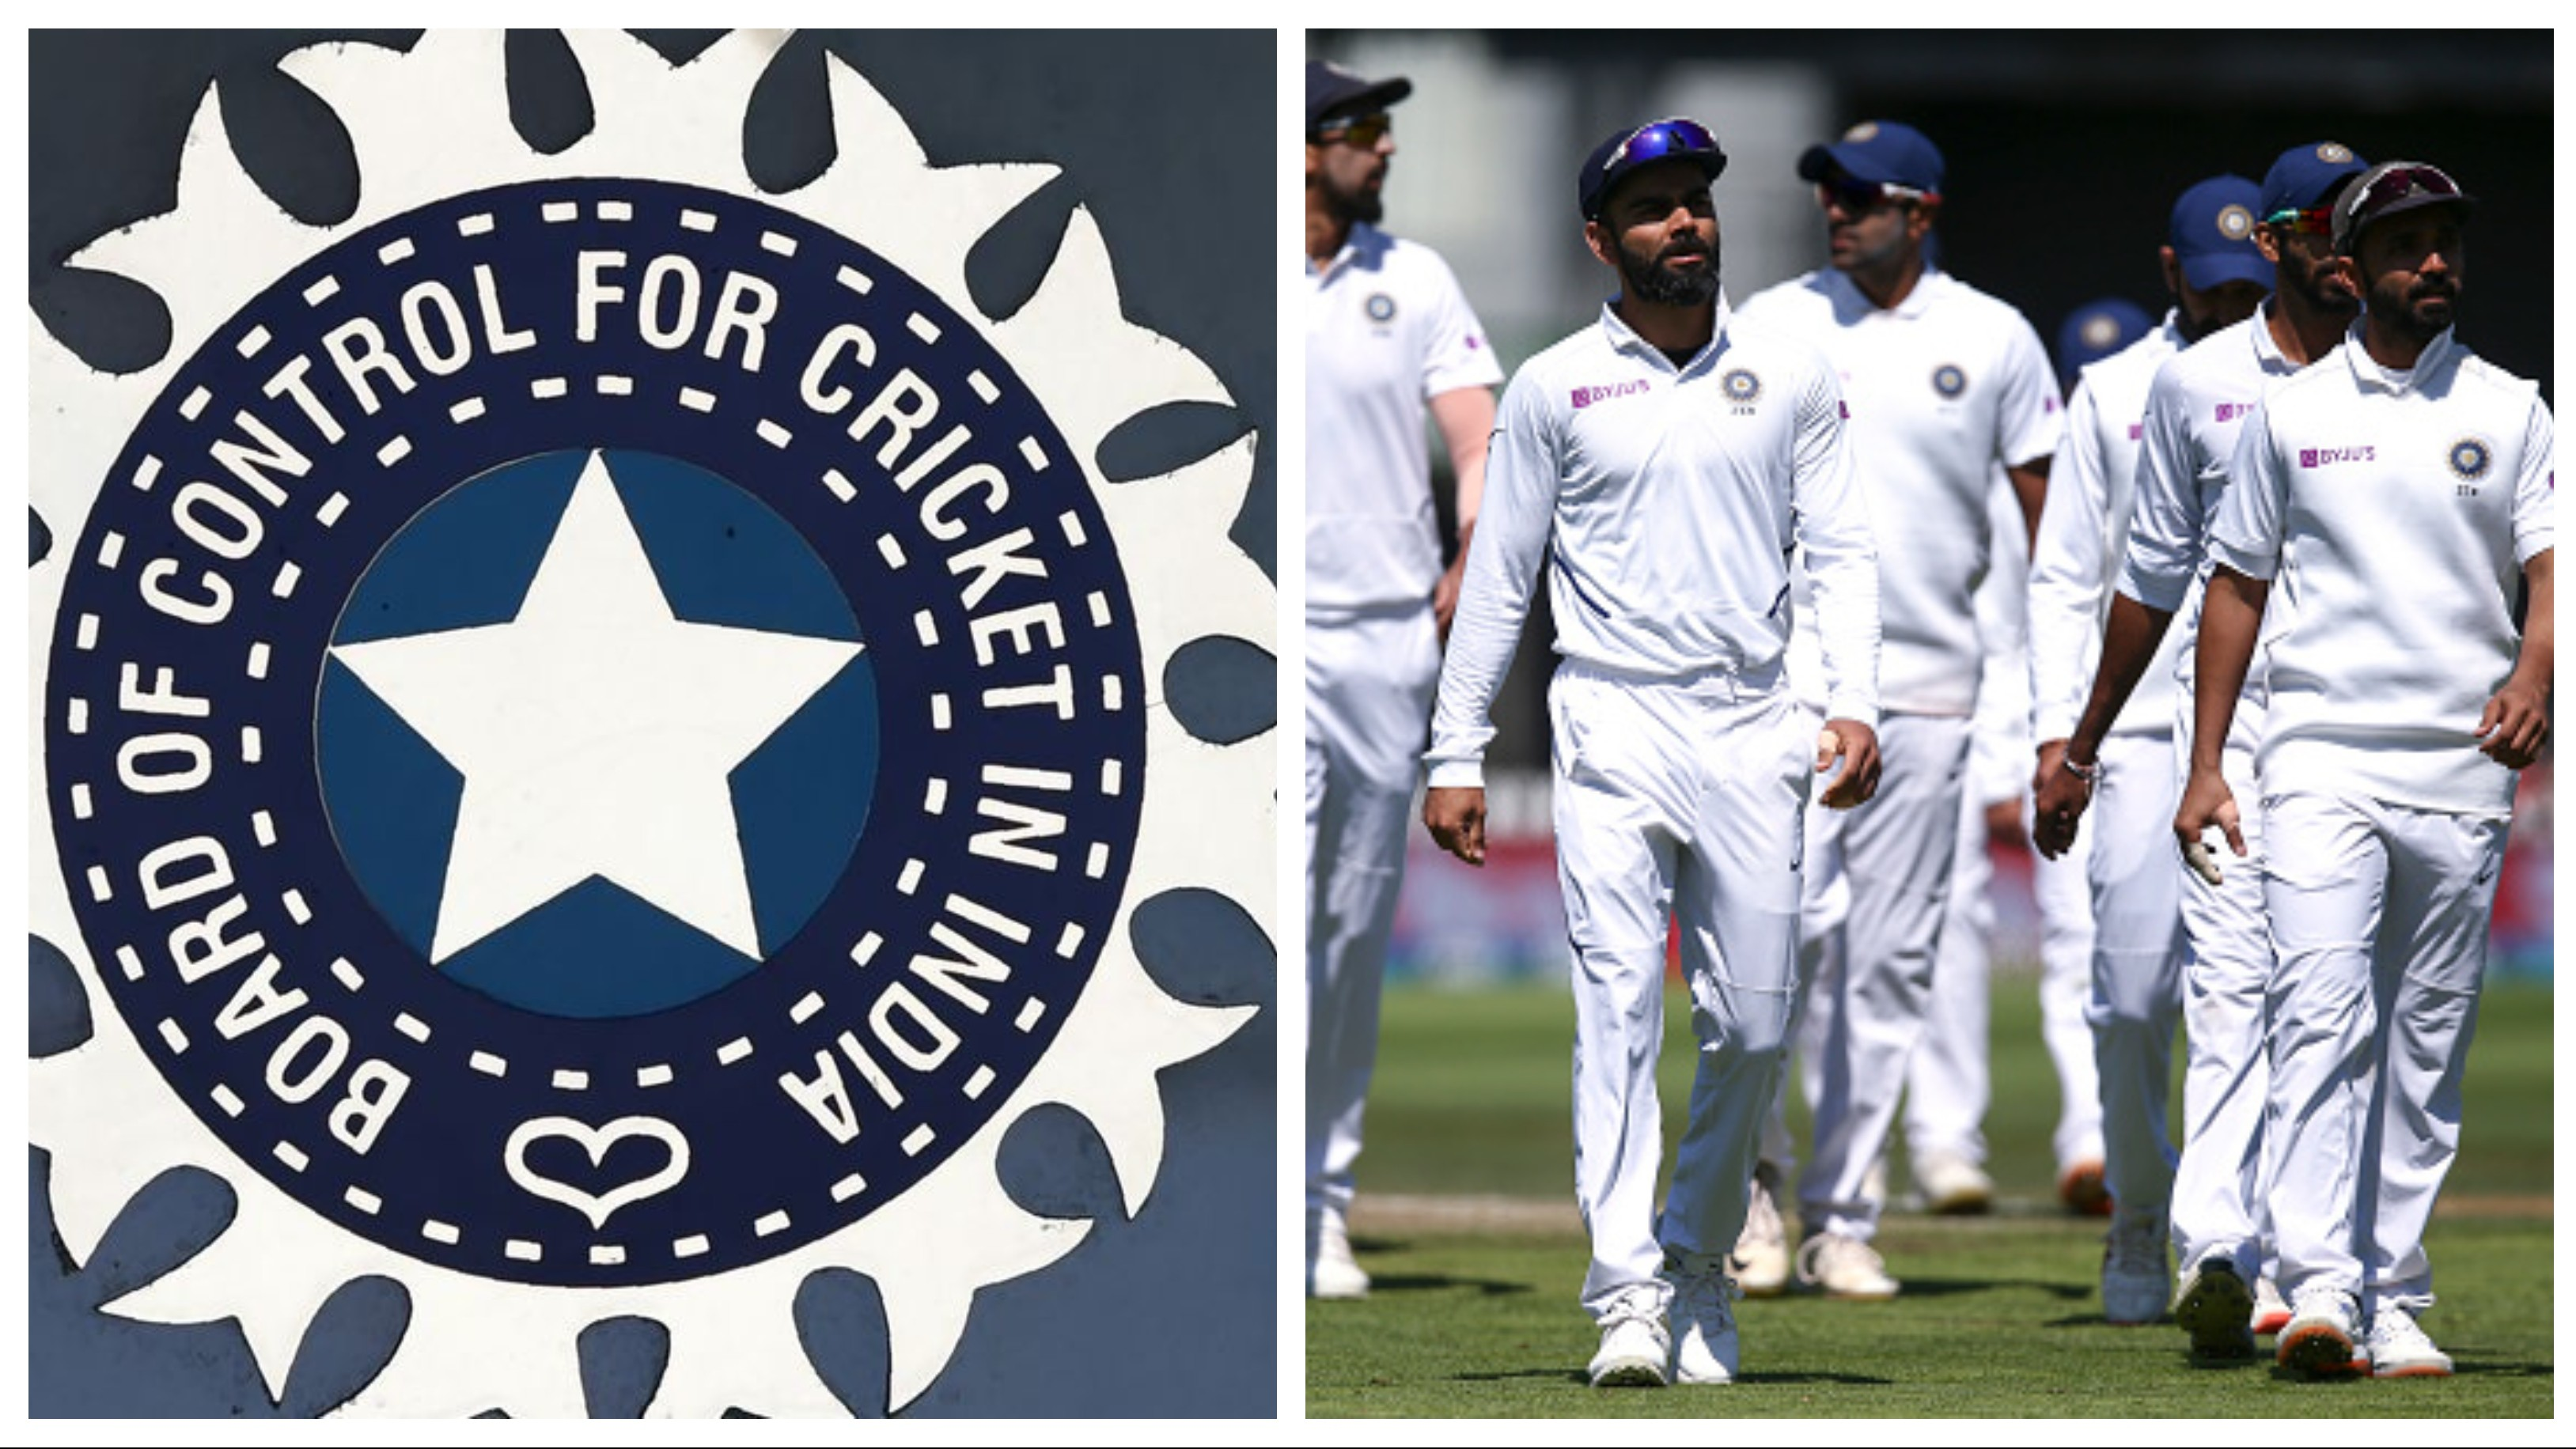 BCCI treasurer confirms no plans to cut down players' salaries amid COVID-19 lockdown